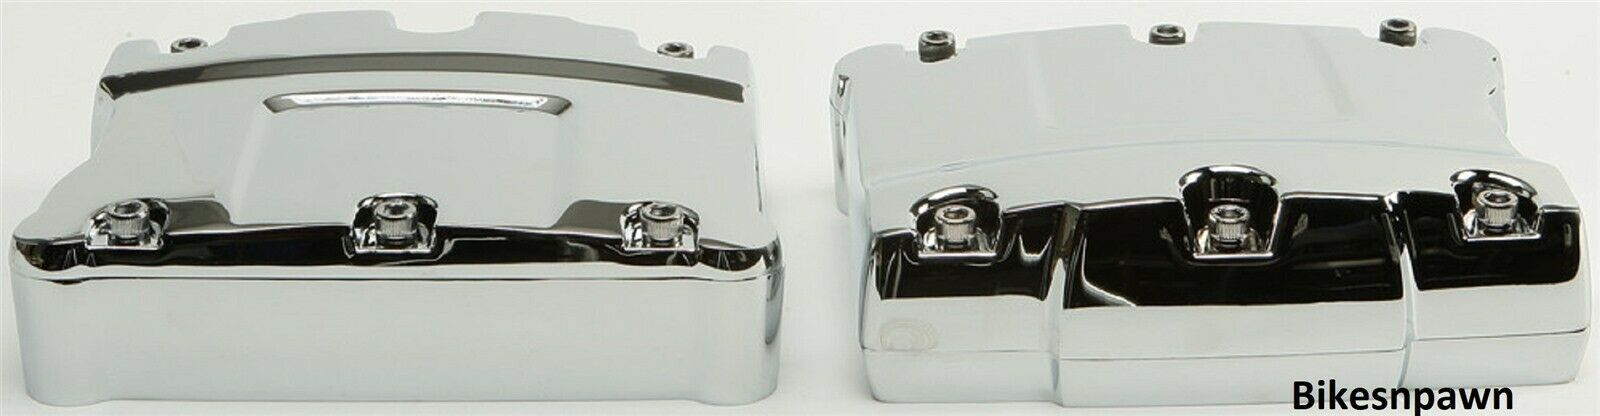 New Chrome Rocker Box Cover Set for 1999-2017 Twin Cam Harley Big Twins